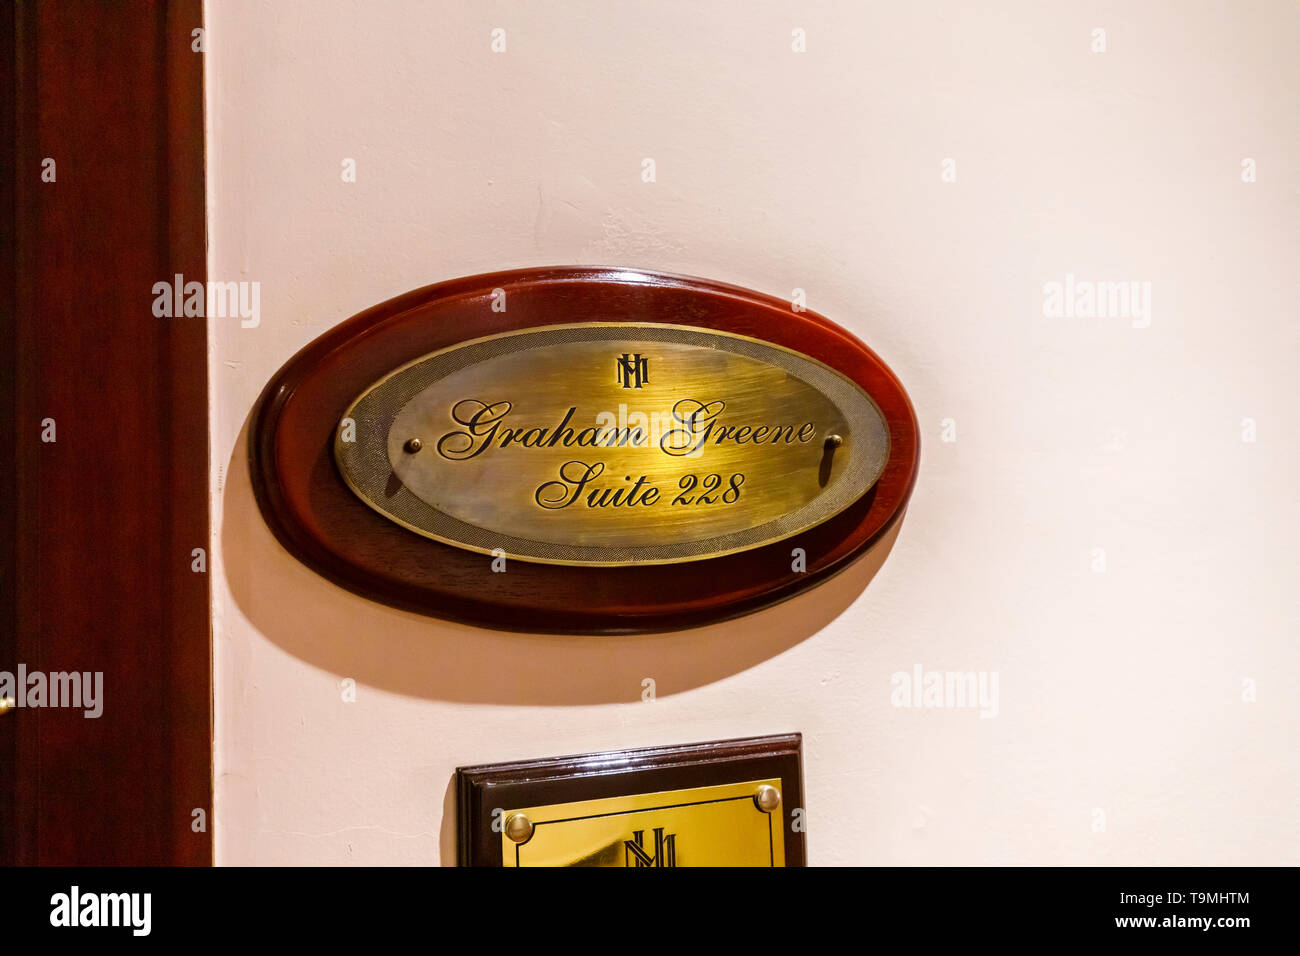 Brass plaque outside the Graham Green Suite, room 228 in the Sofitel Legend Metropole Hanoi hotel, Hanoi, north Vietnam, south-east Asia Stock Photo